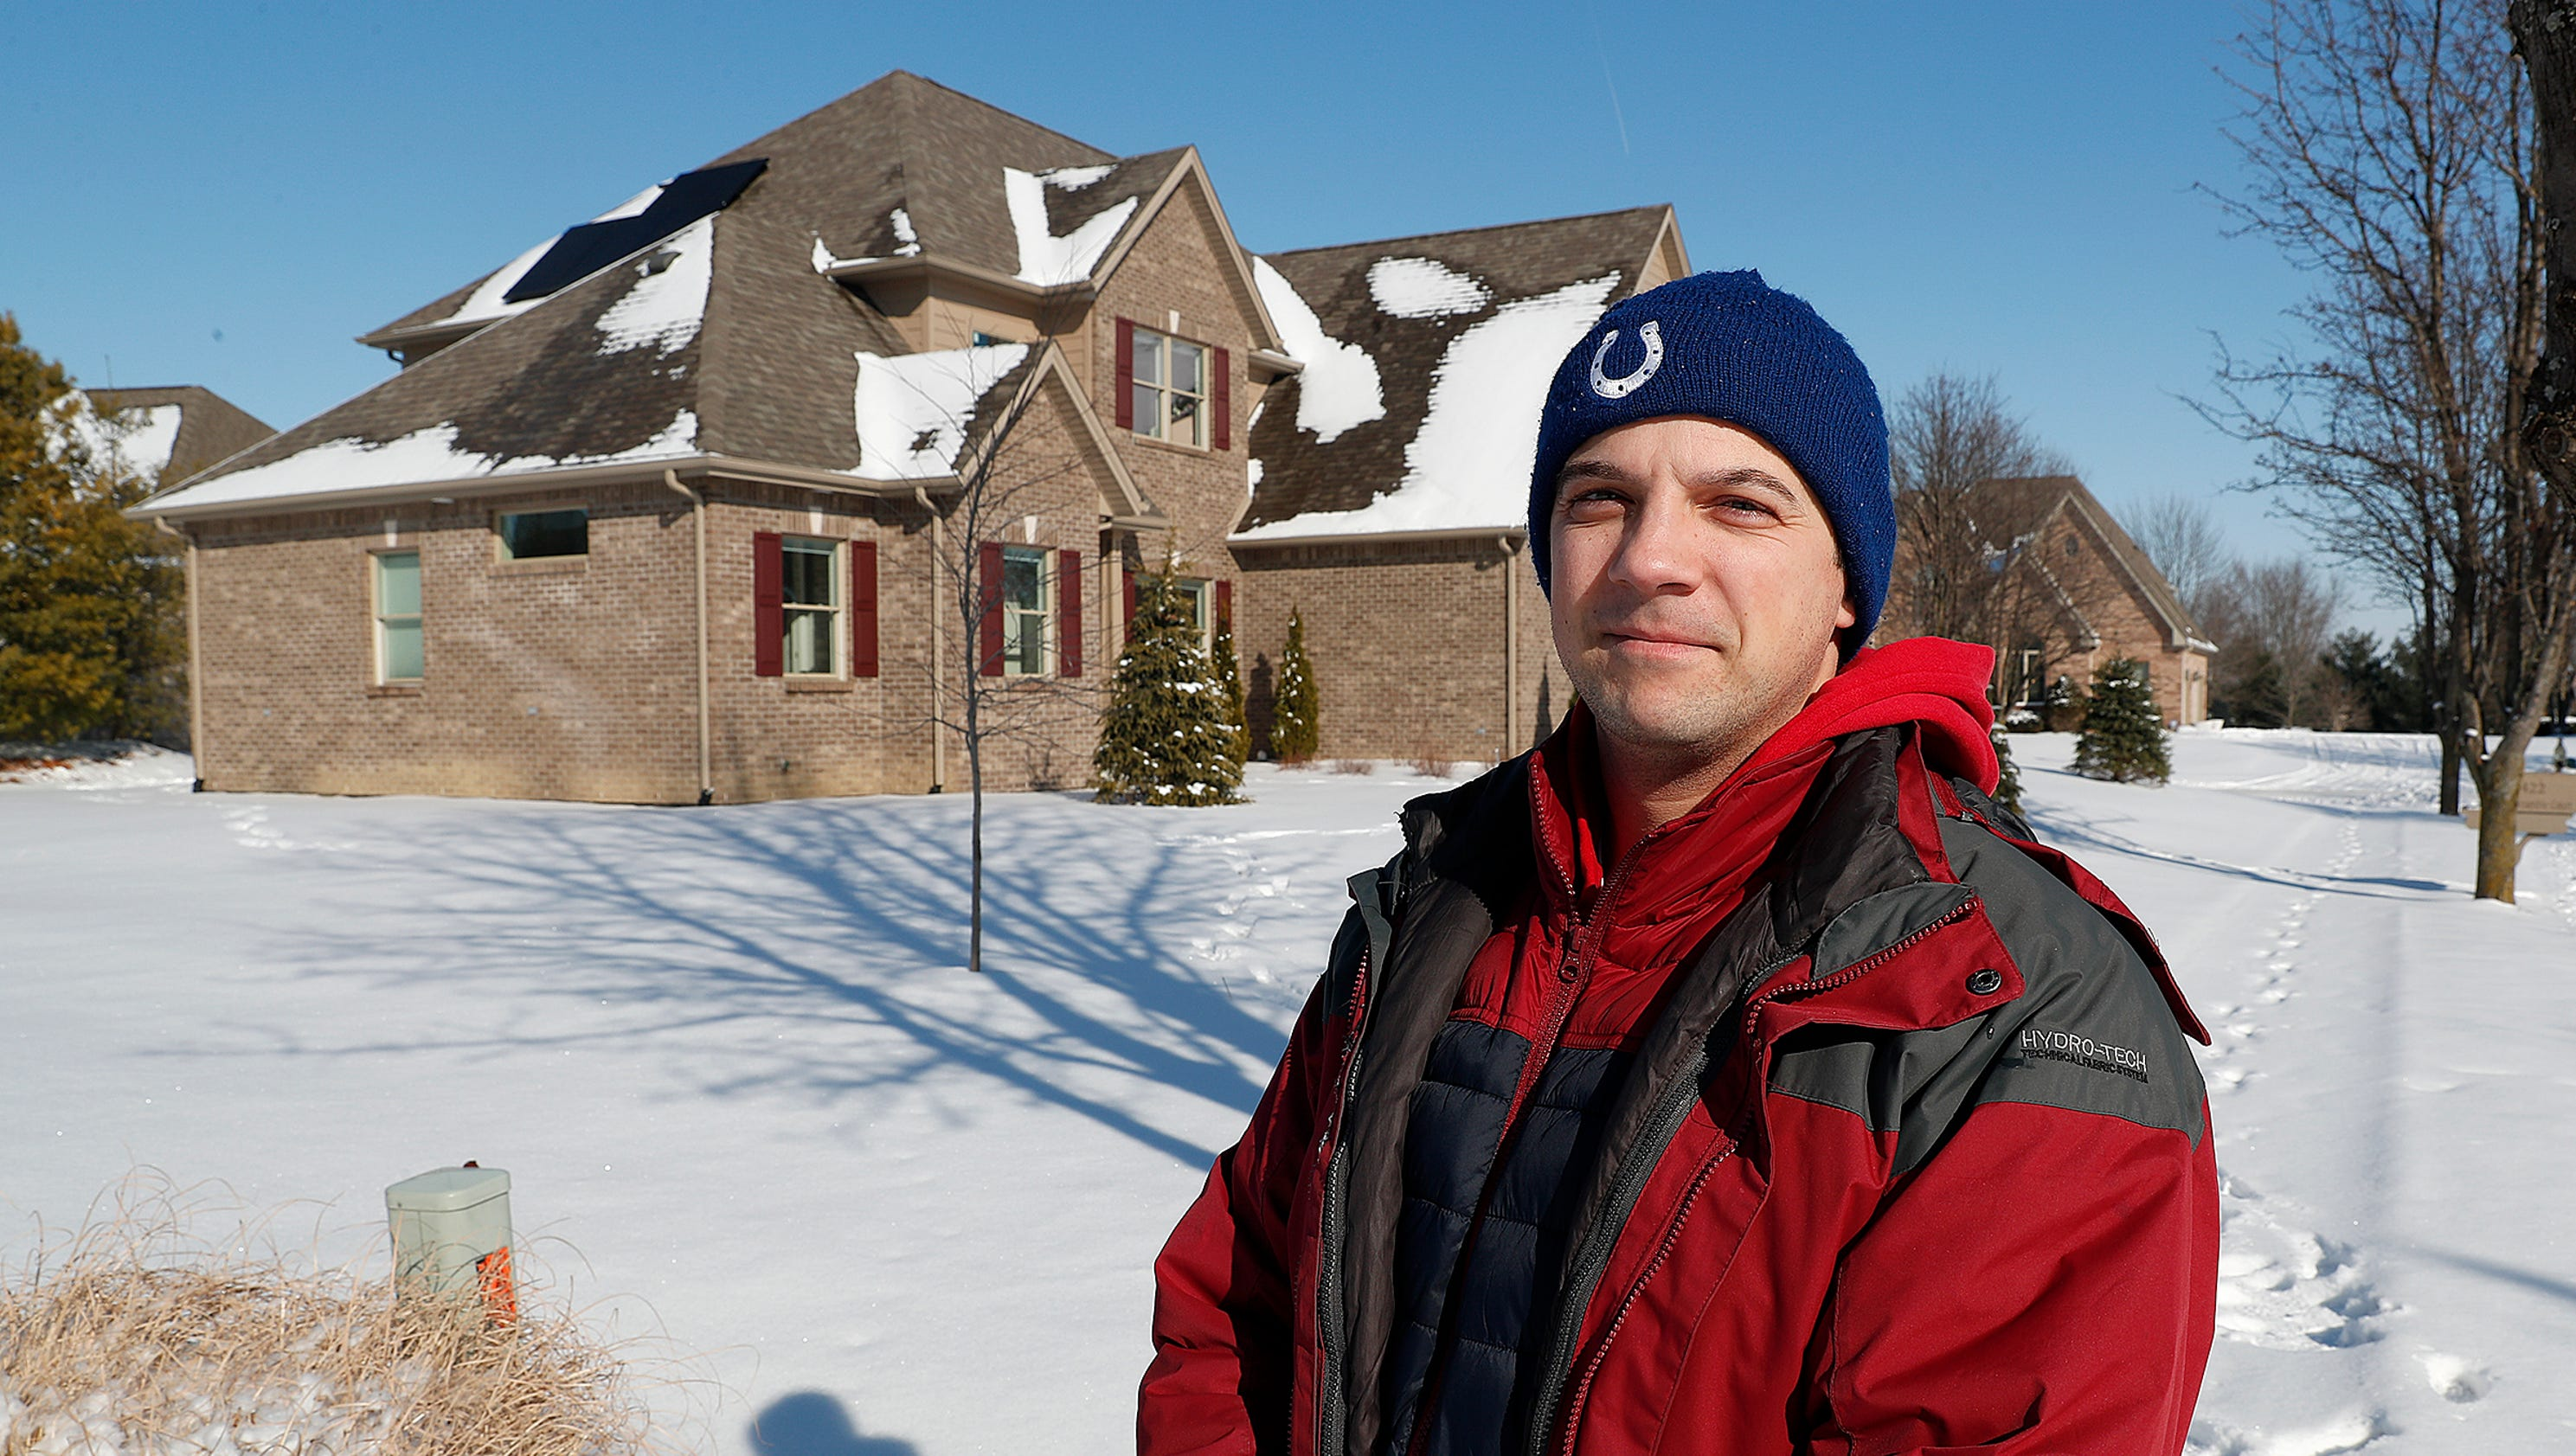 HOAs challenge Hoosiers' property rights over solar panels